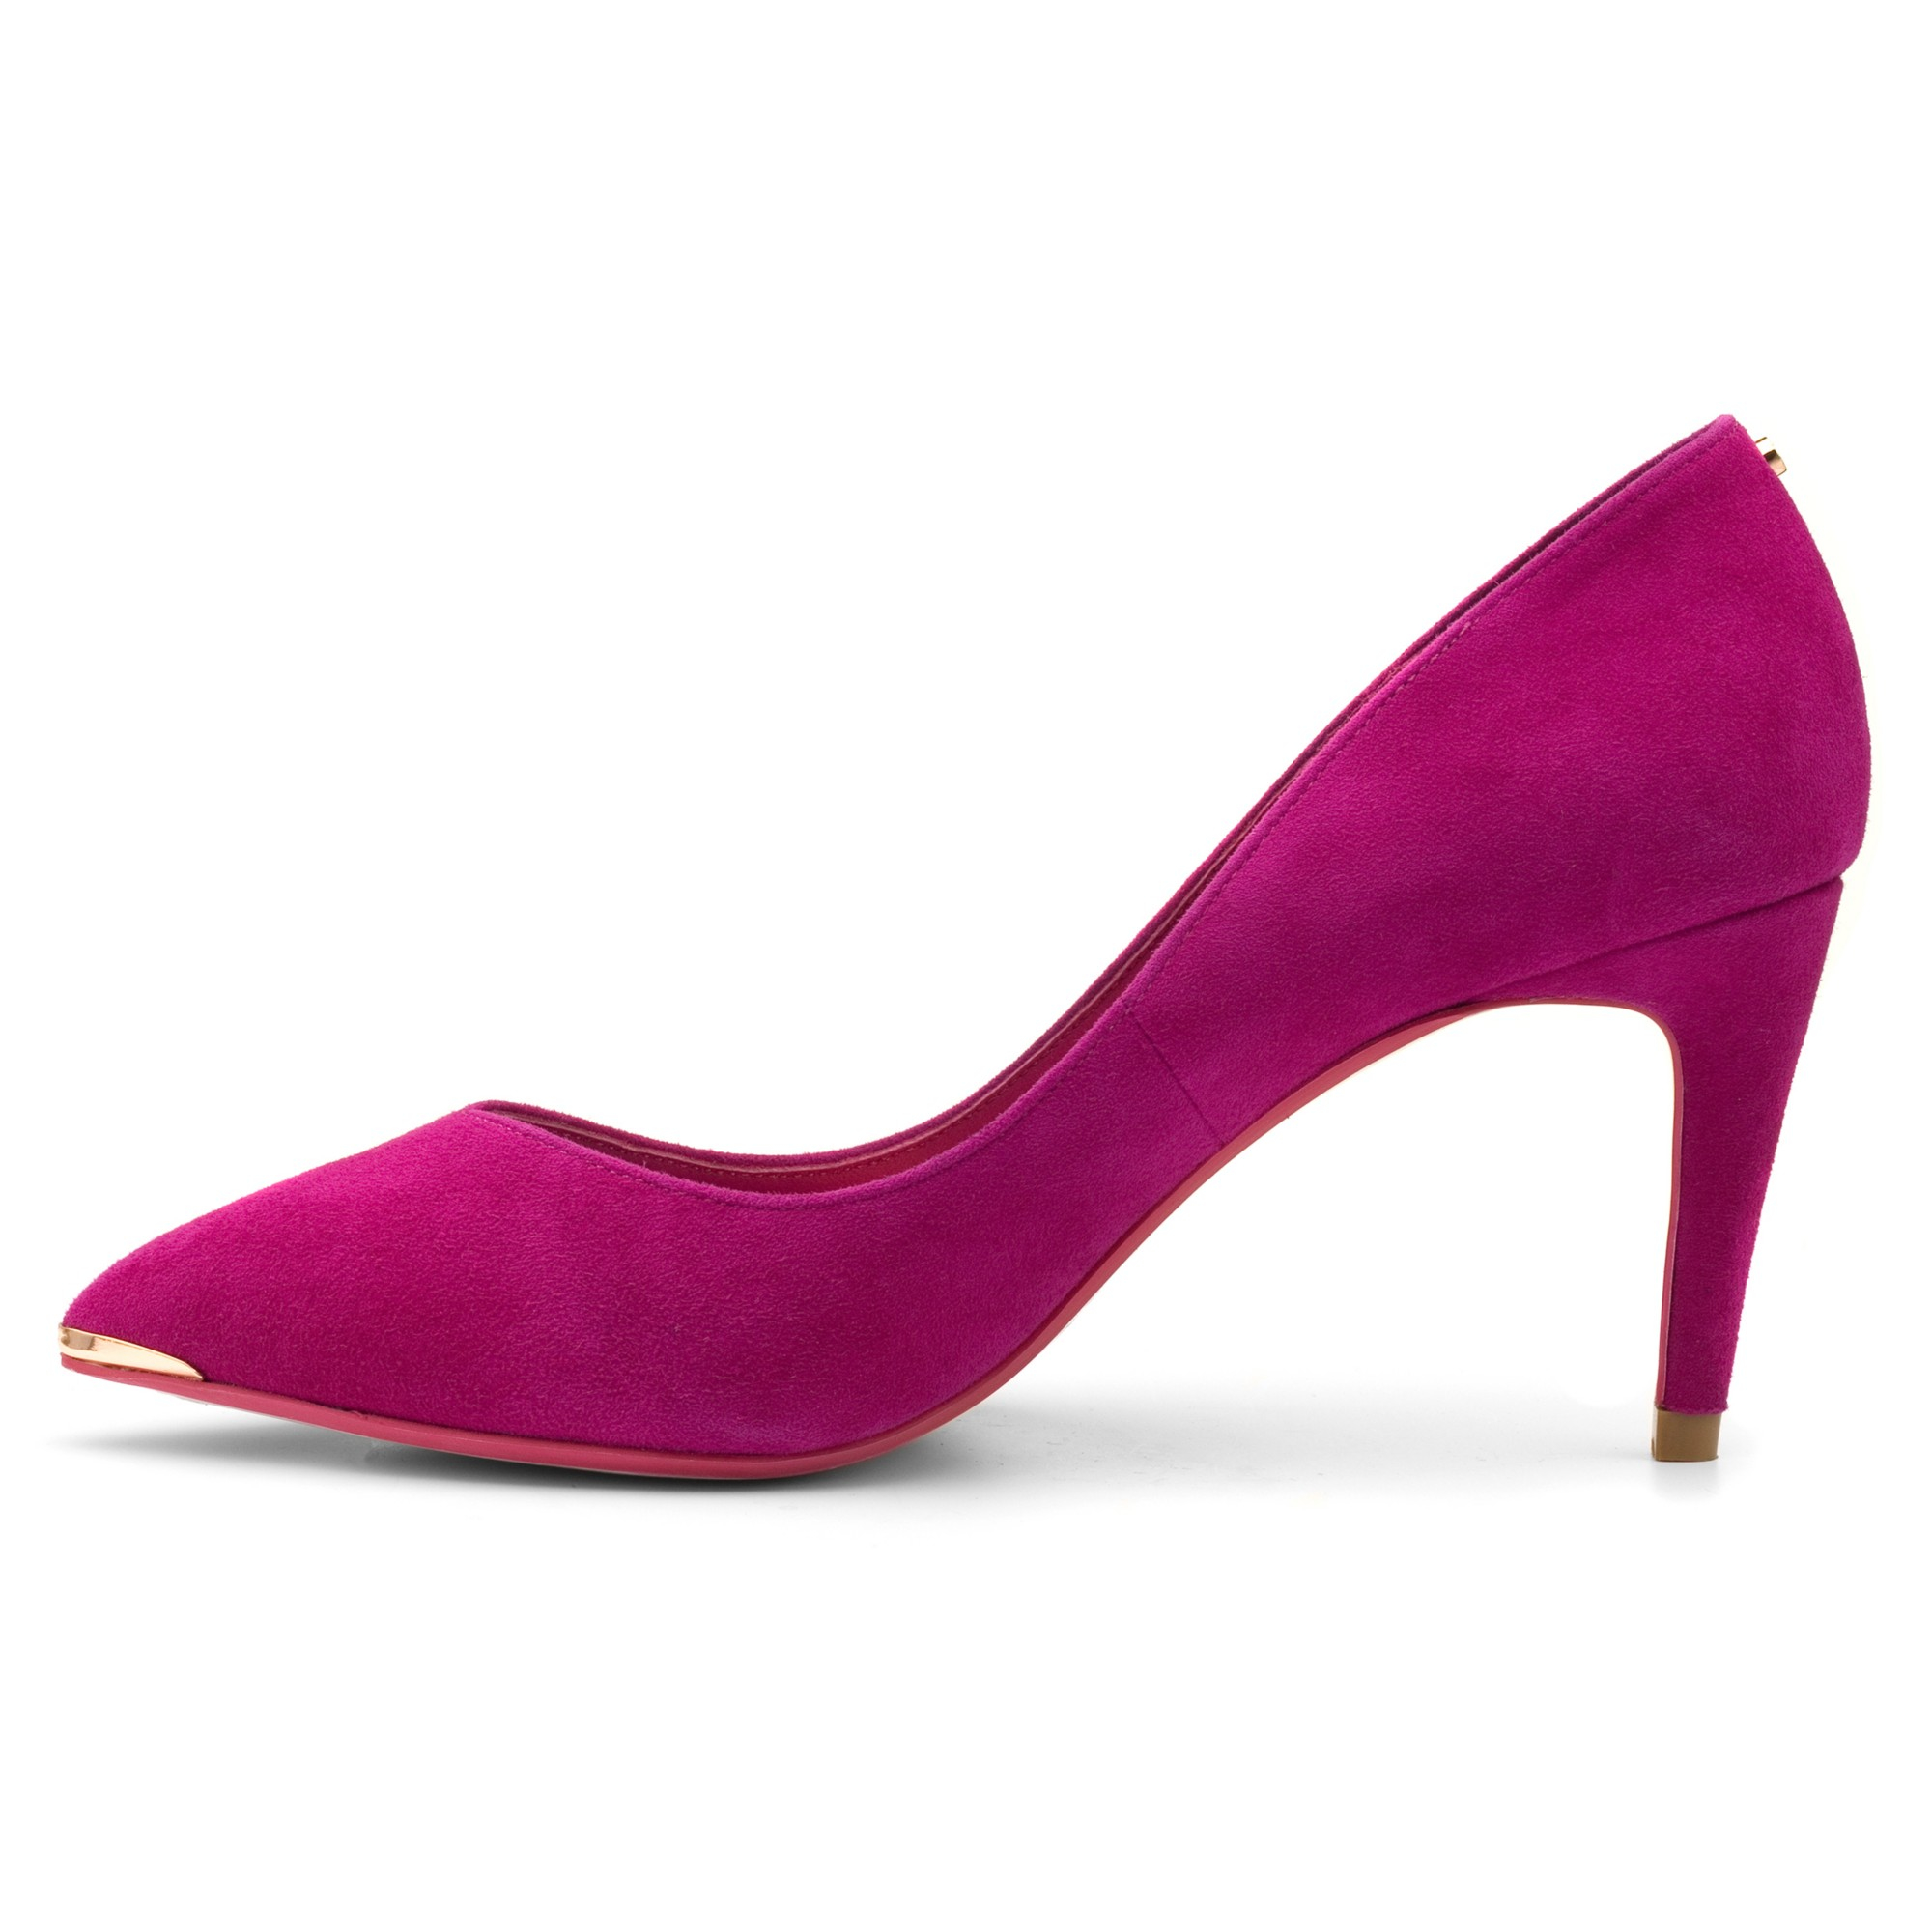 3ad51787677 Ted Baker Pink Monirra Pointed Court Shoes